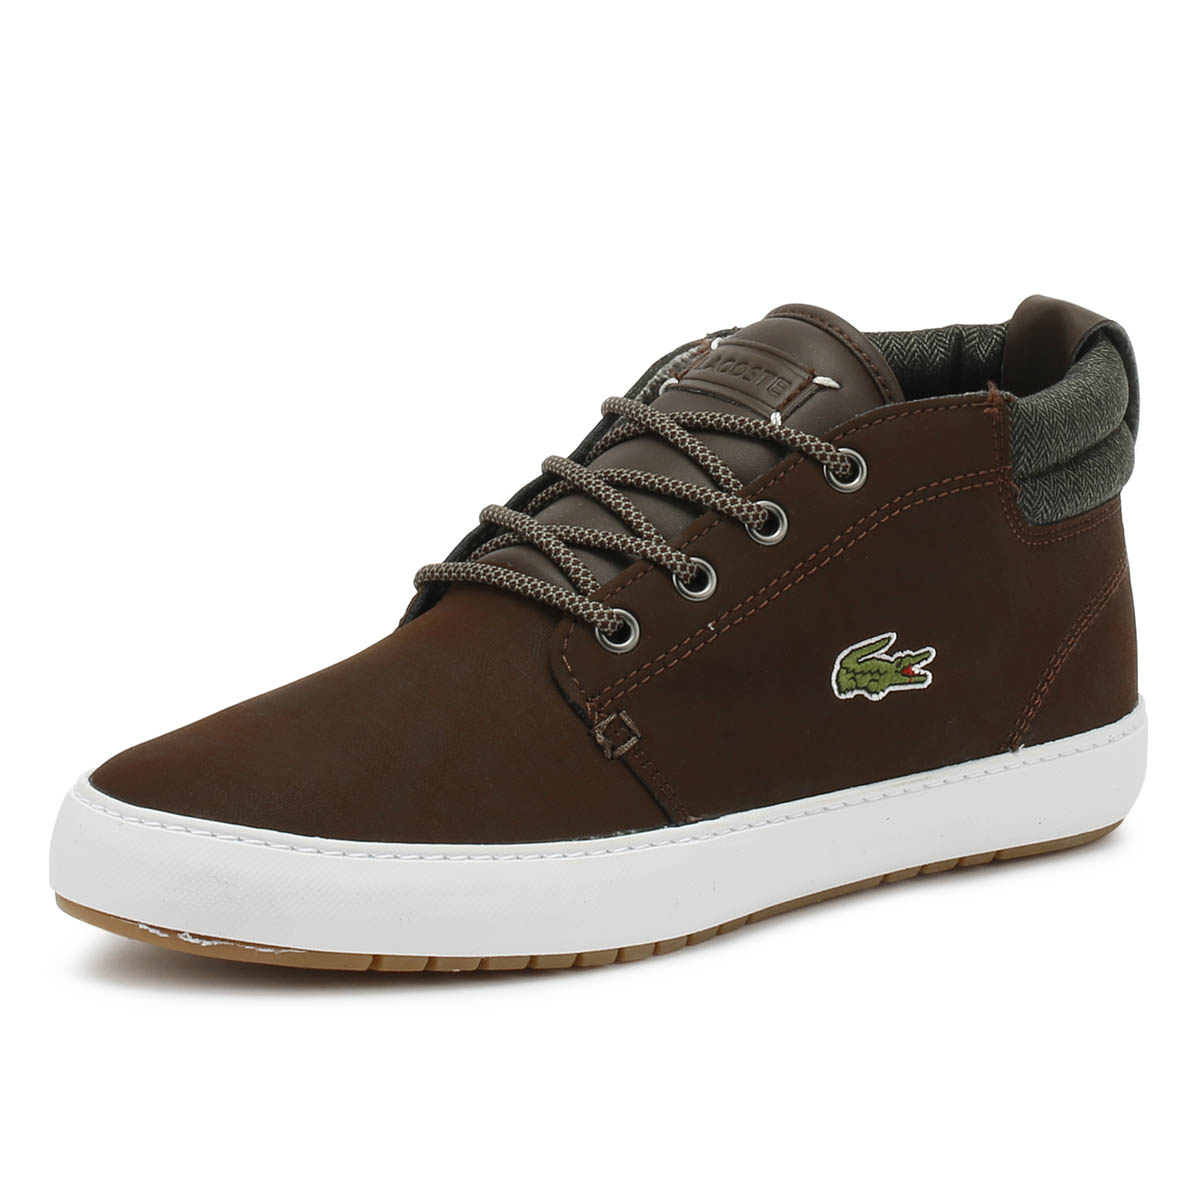 be01c5648a0d71 Lacoste Mens Trainers Ampthill Terra 318 1 Mens Dark Brown   Khaki Casual  Shoes